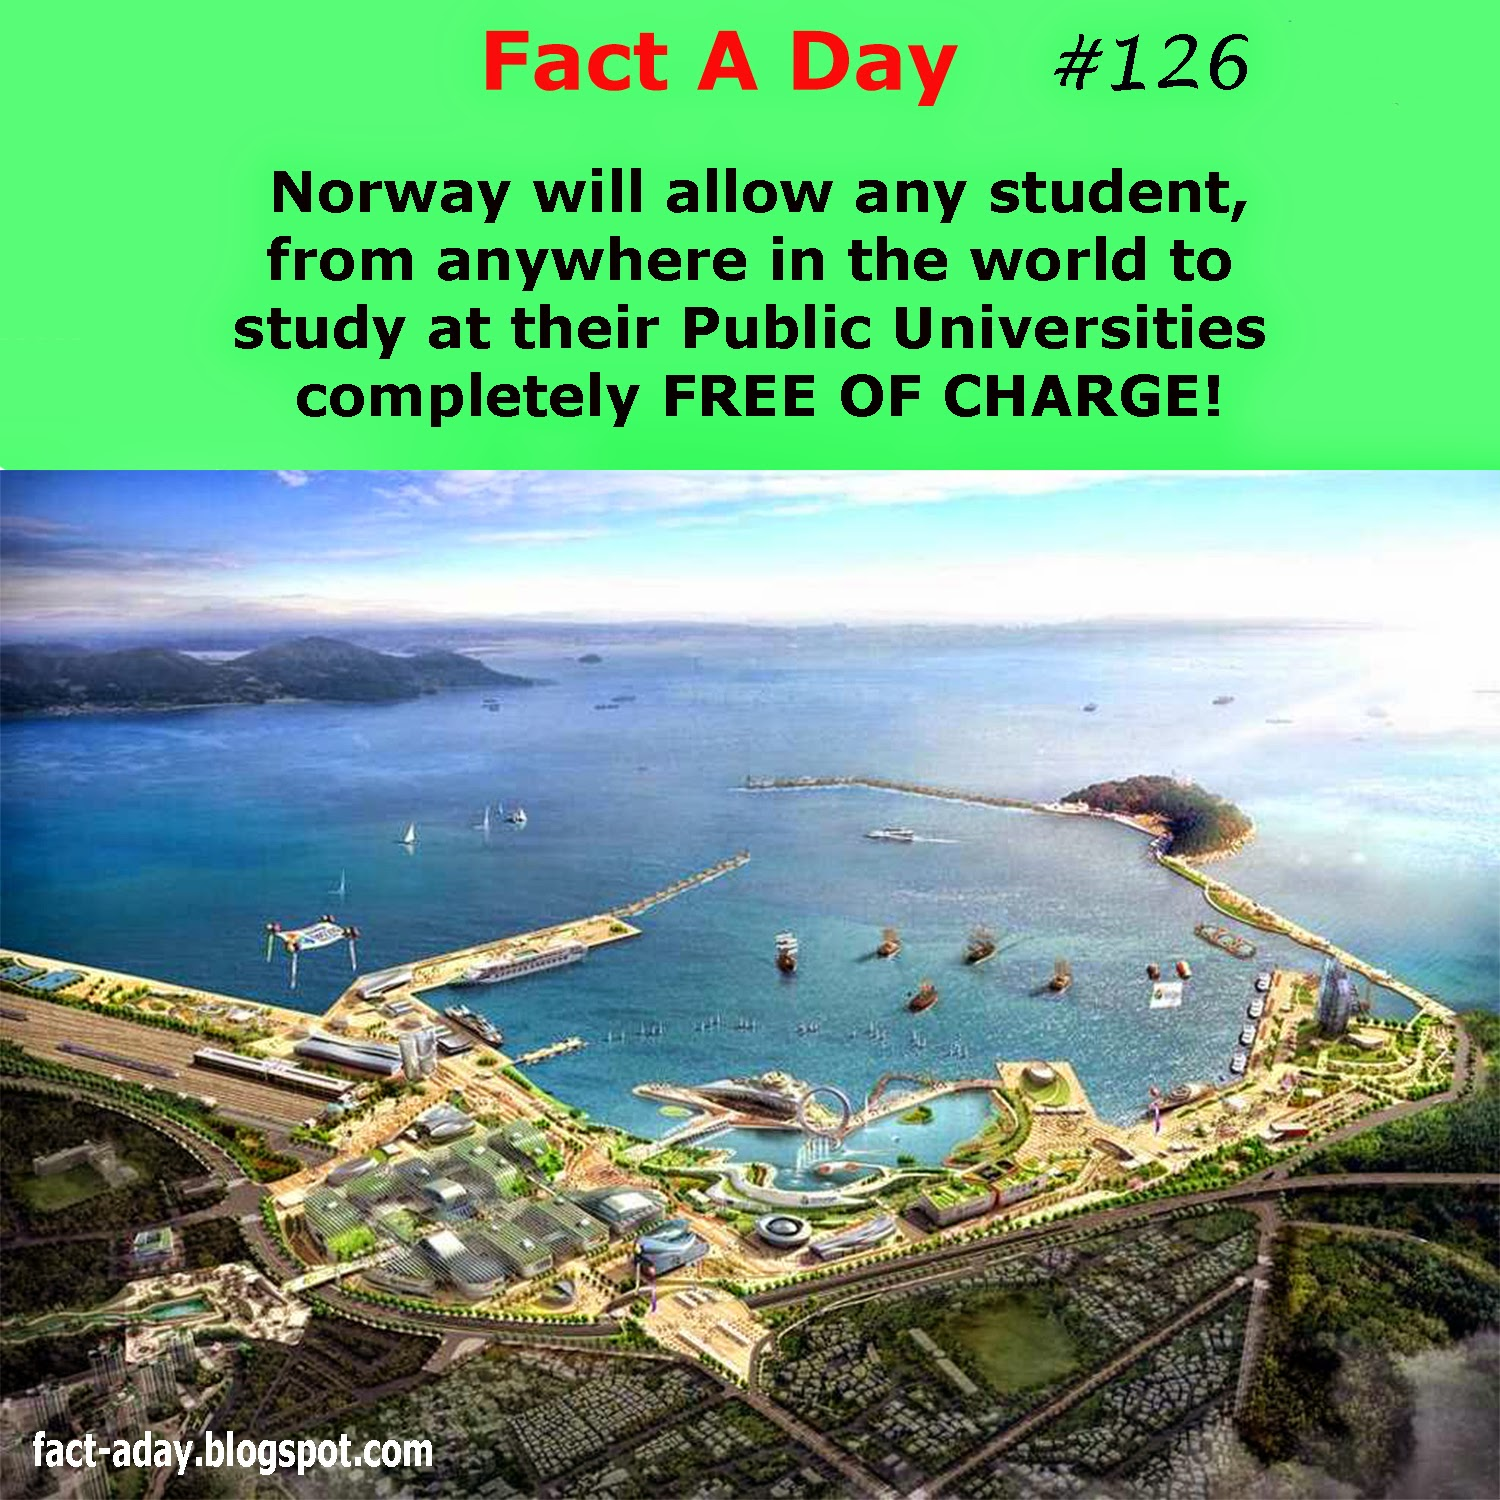 norway-university-free-to-any-student